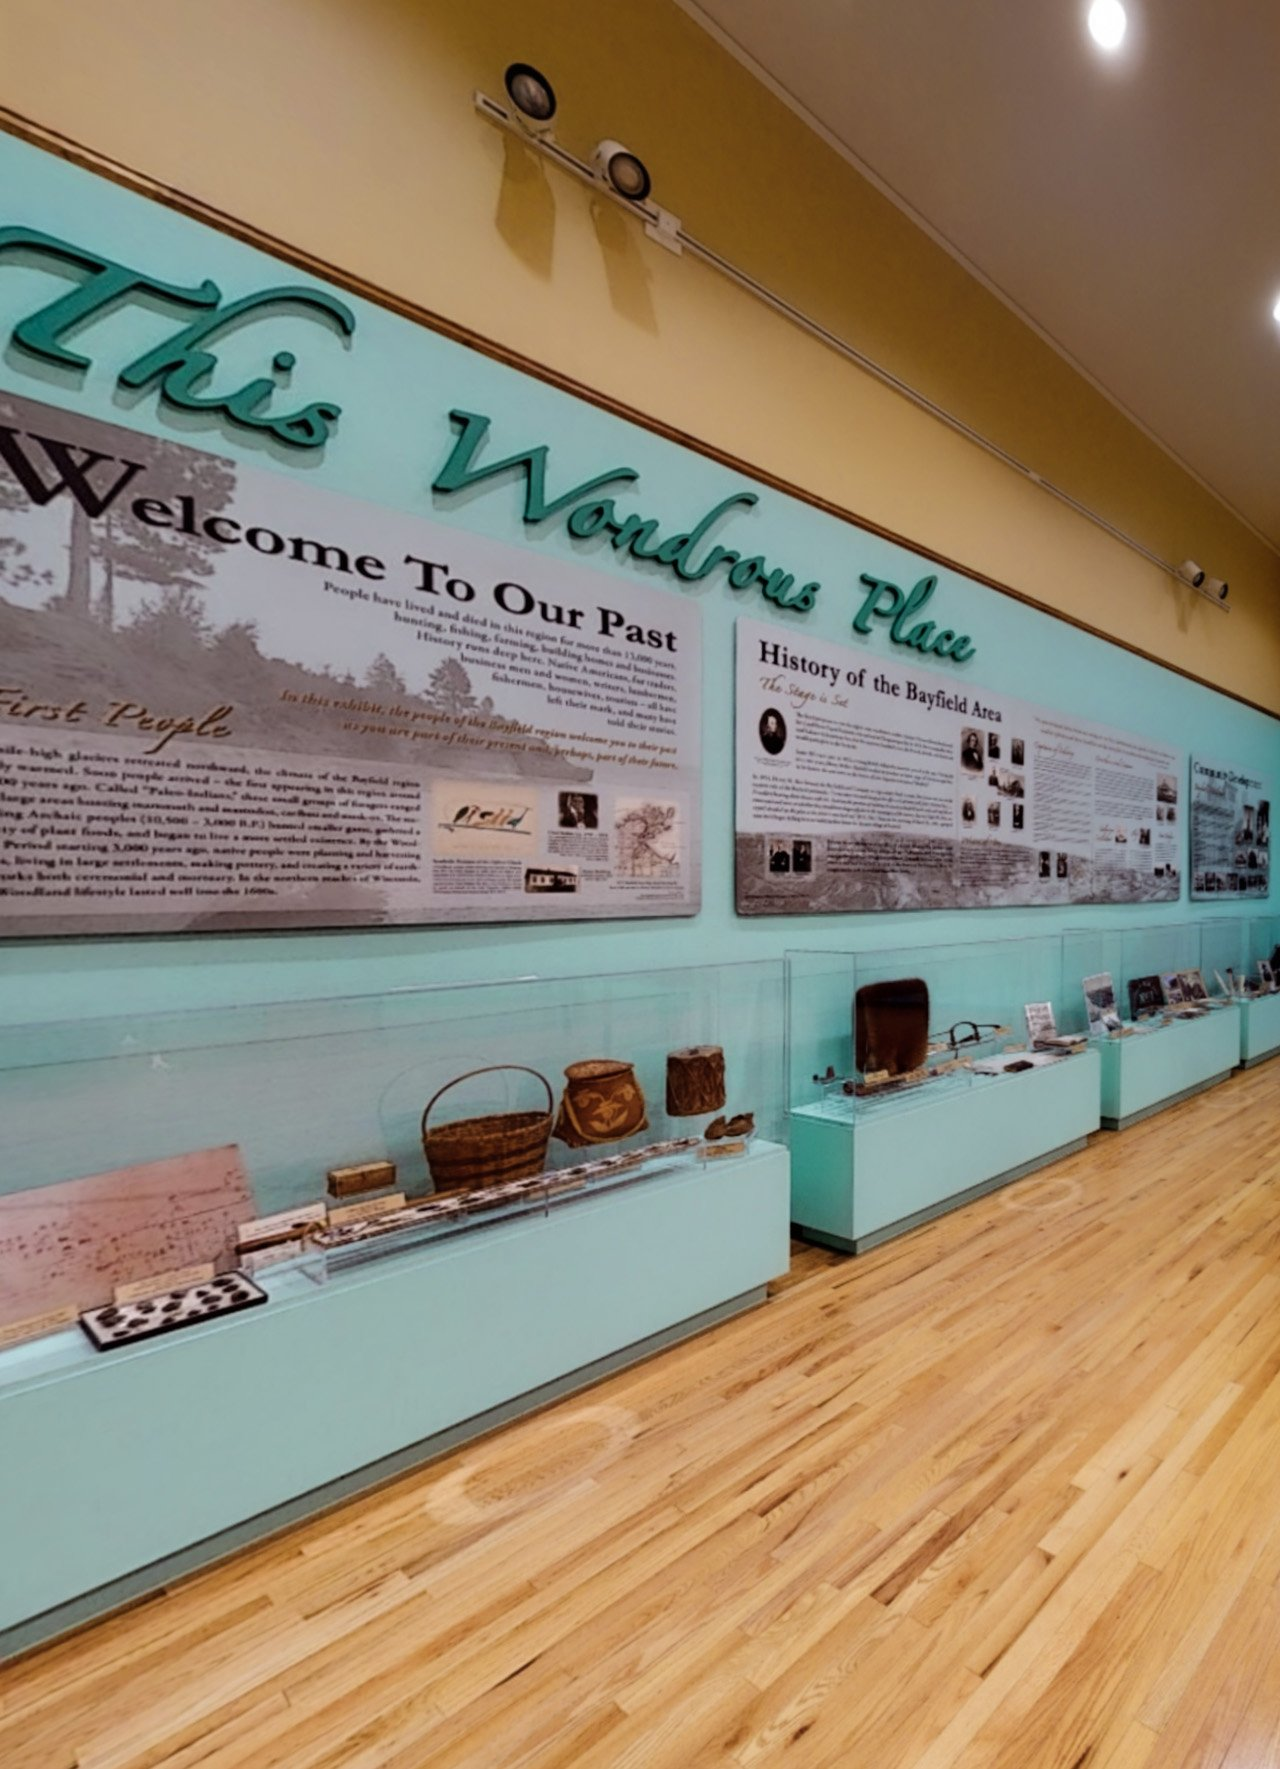 The History of Bayfield exhibit.